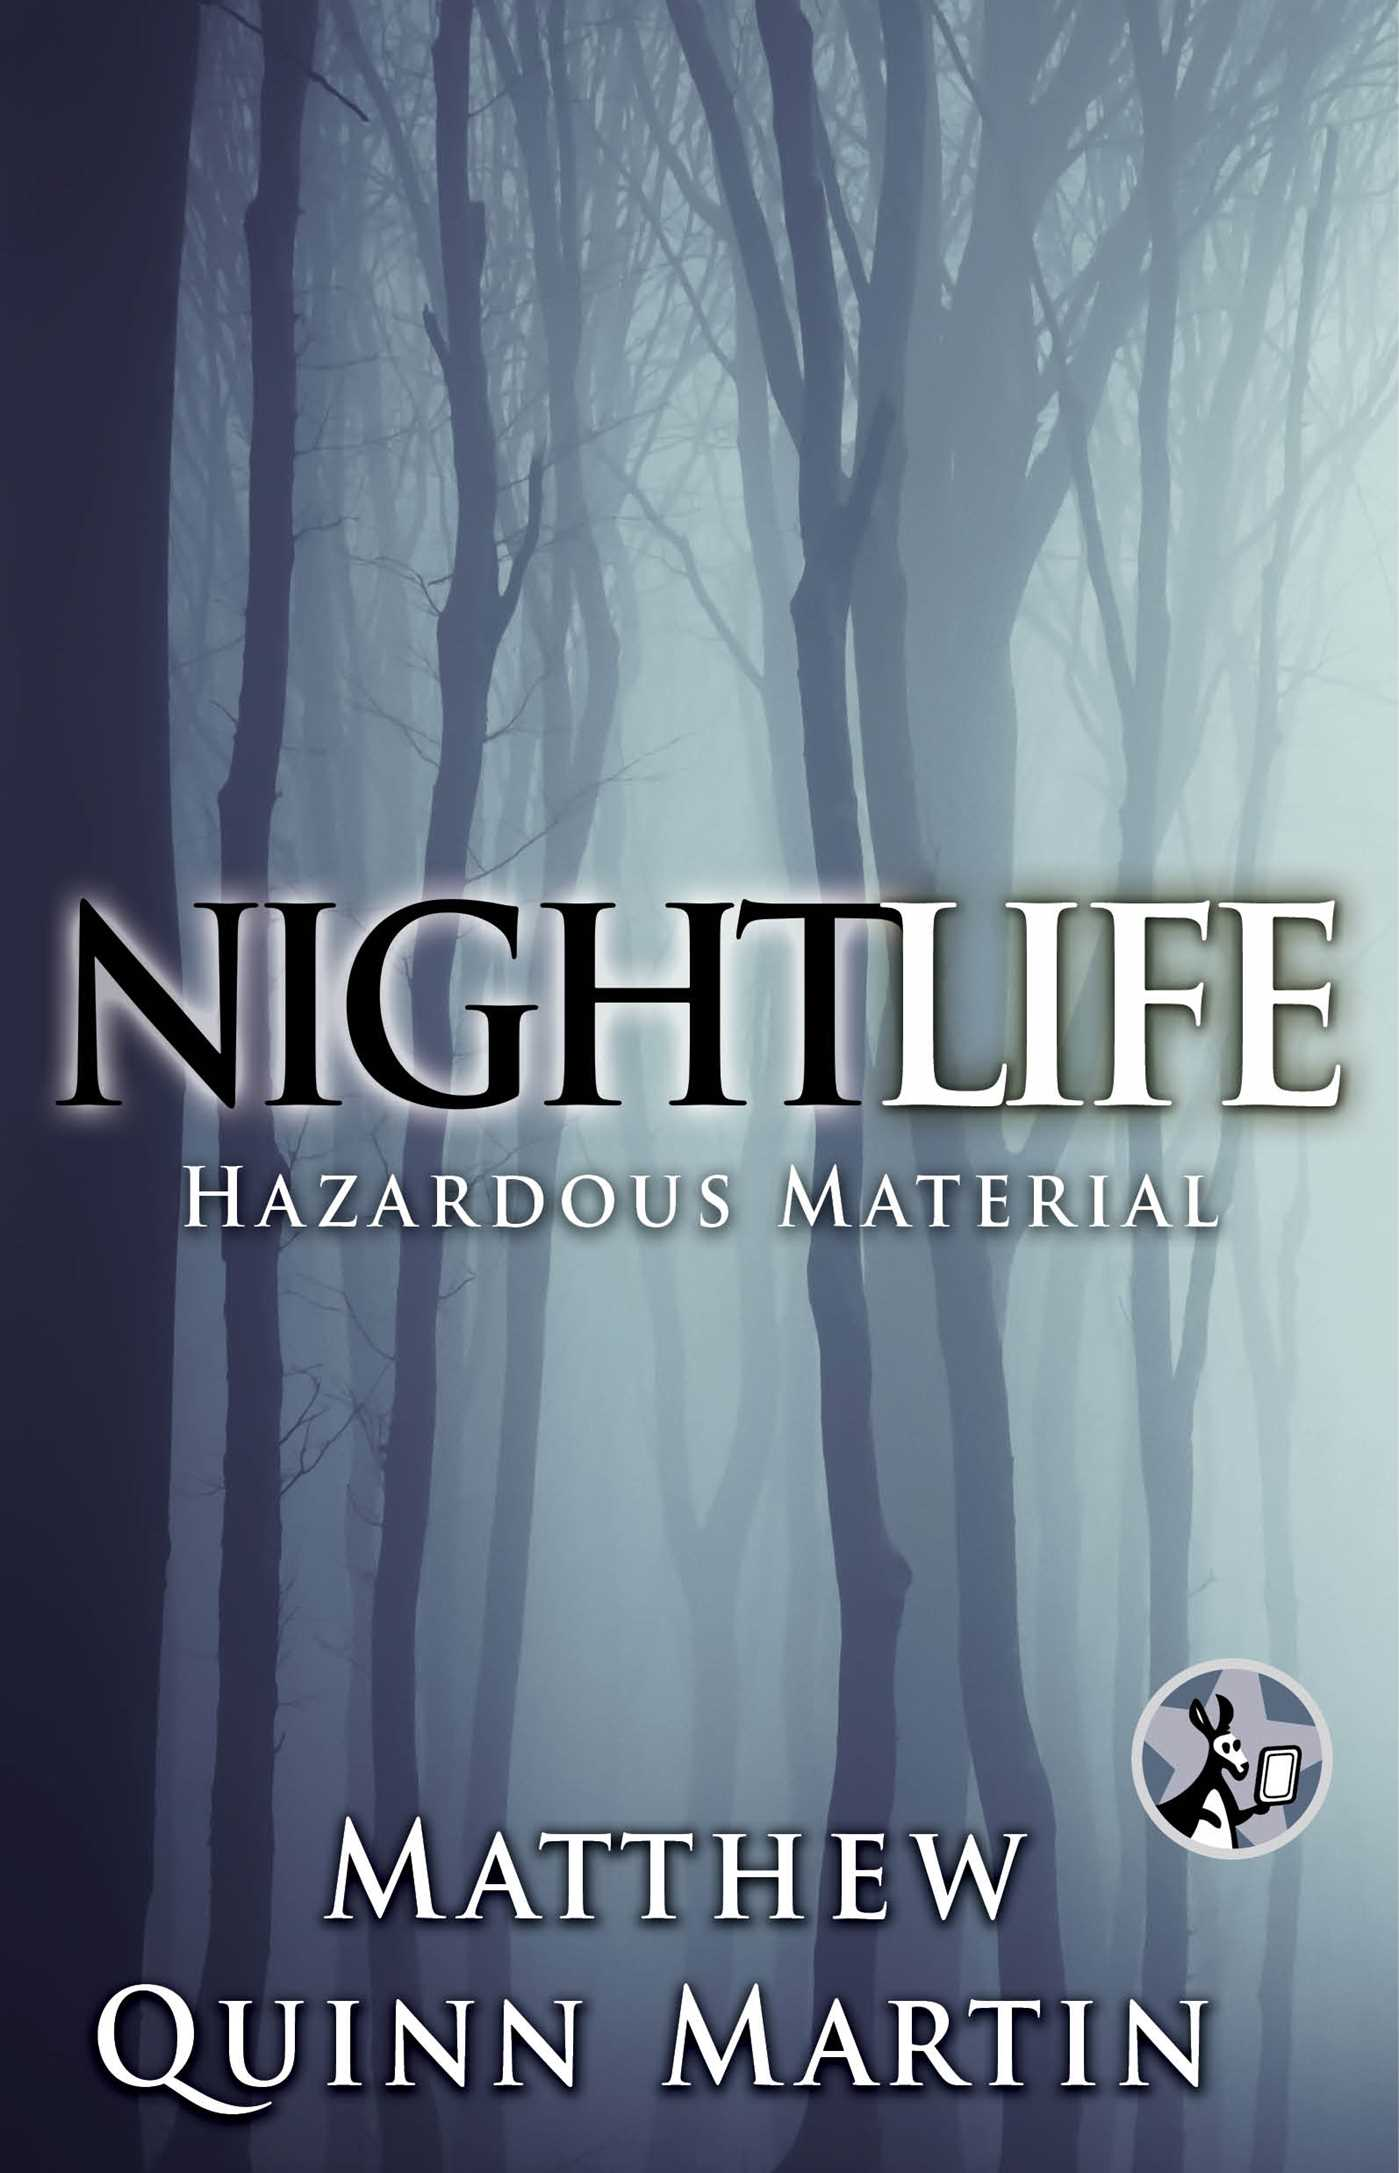 Nightlife hazardous material 9781501108860 hr